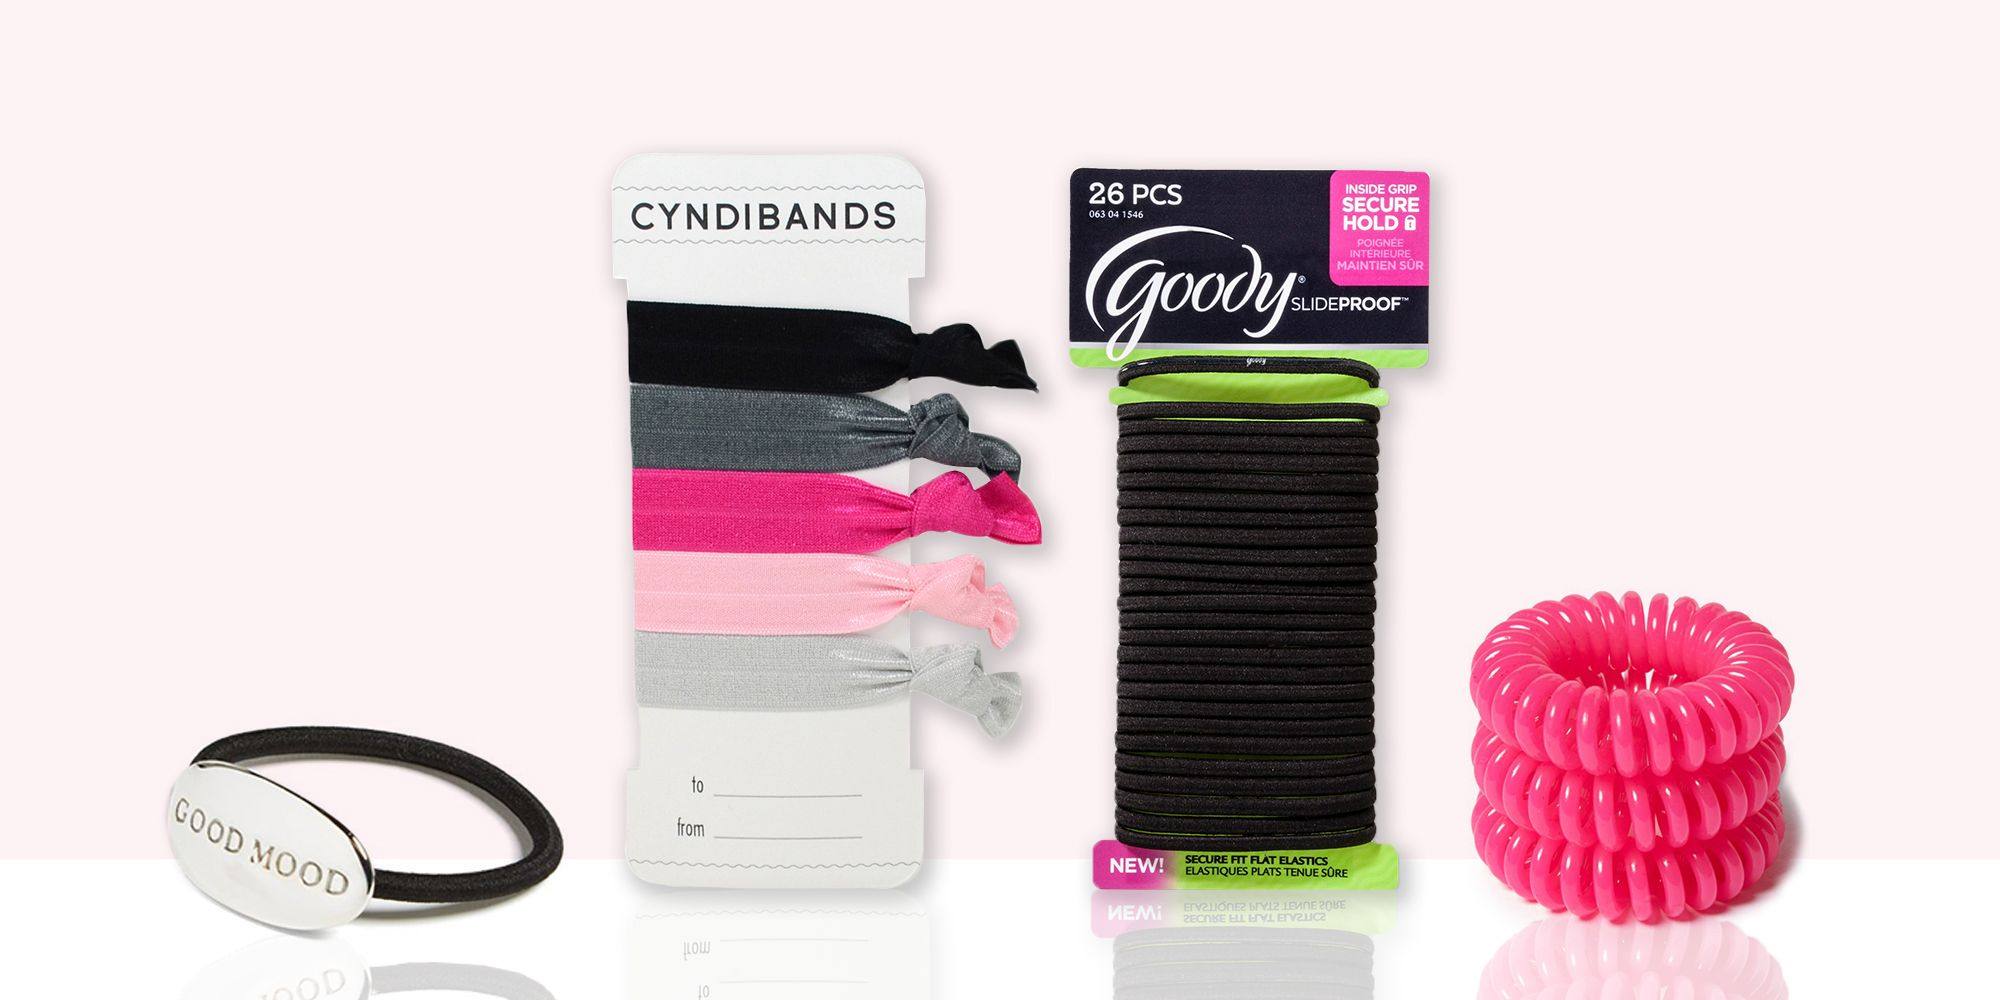 8 Best Hair Ties for 2018 - Hair Ties and Ponytail Holders 98259802110